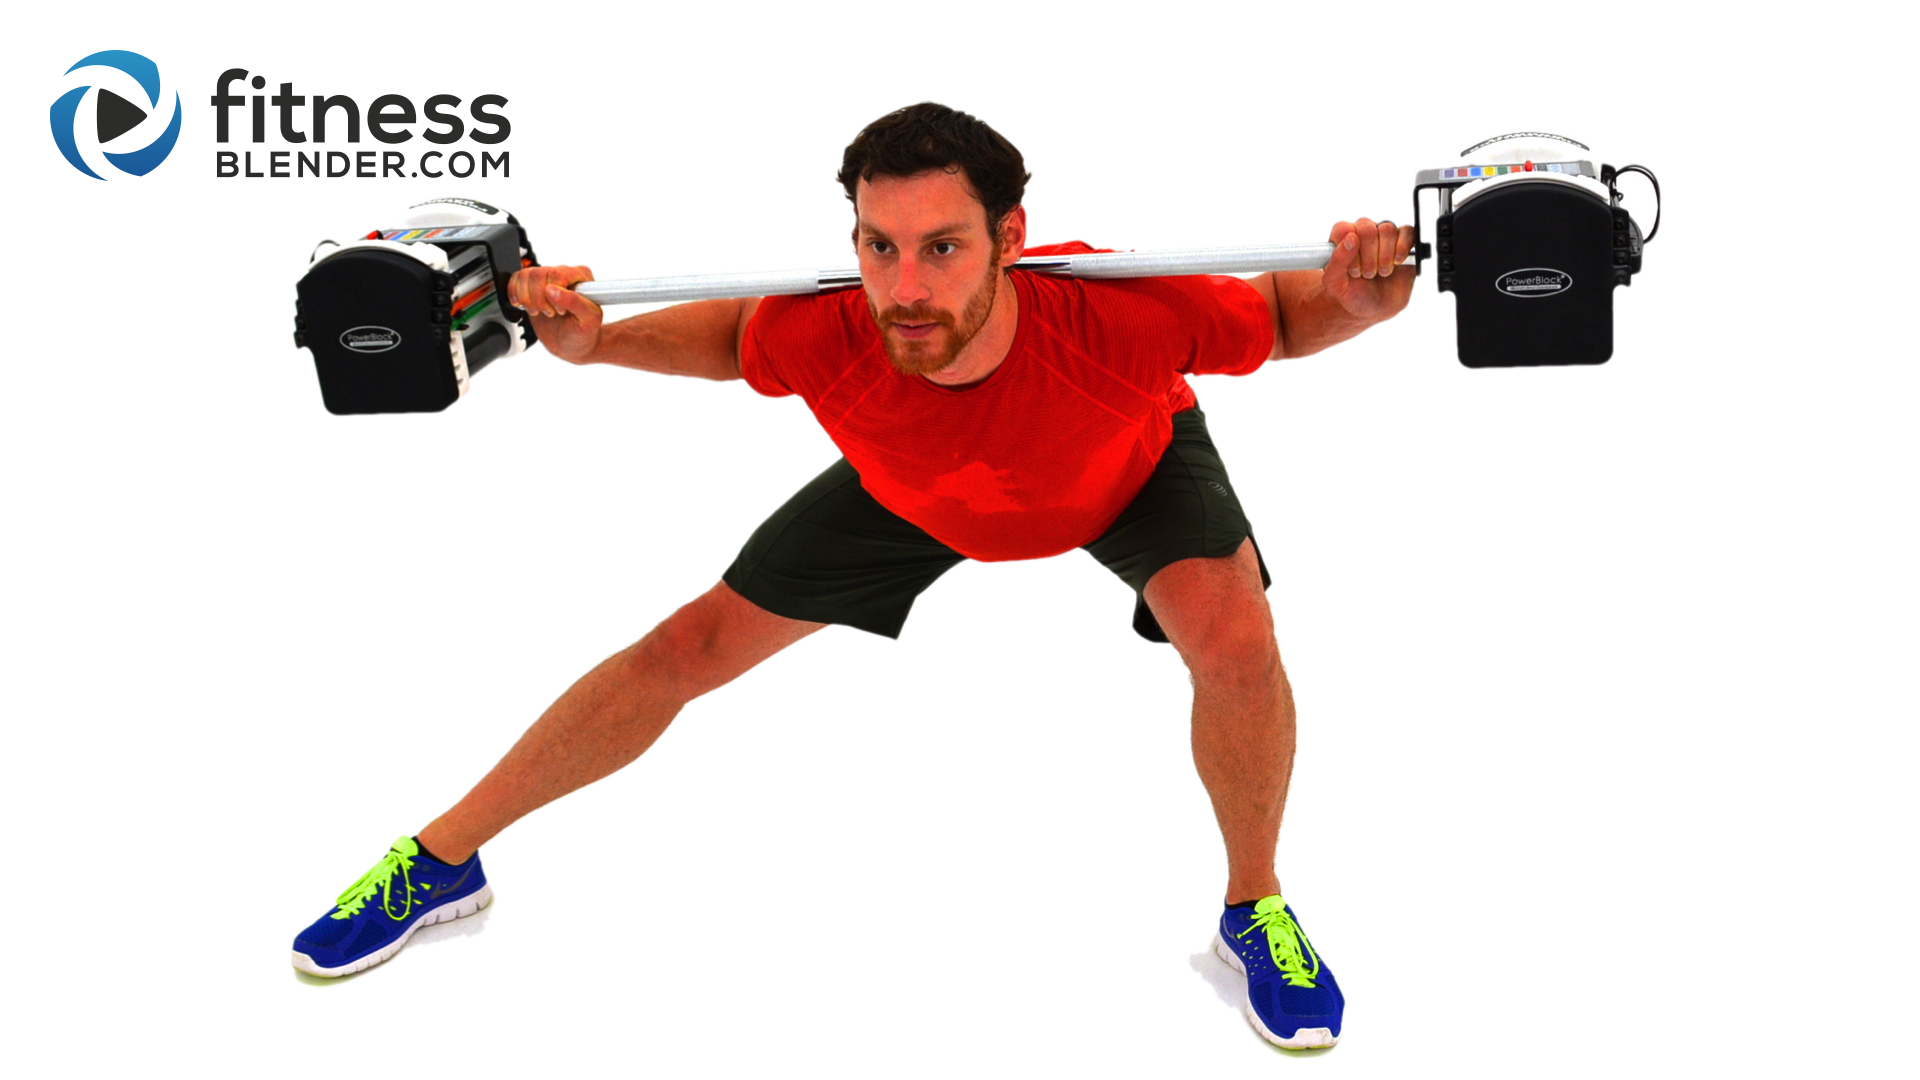 Mass Workout For Legs At Home Lower Body Barbell Workout Fitness Blender